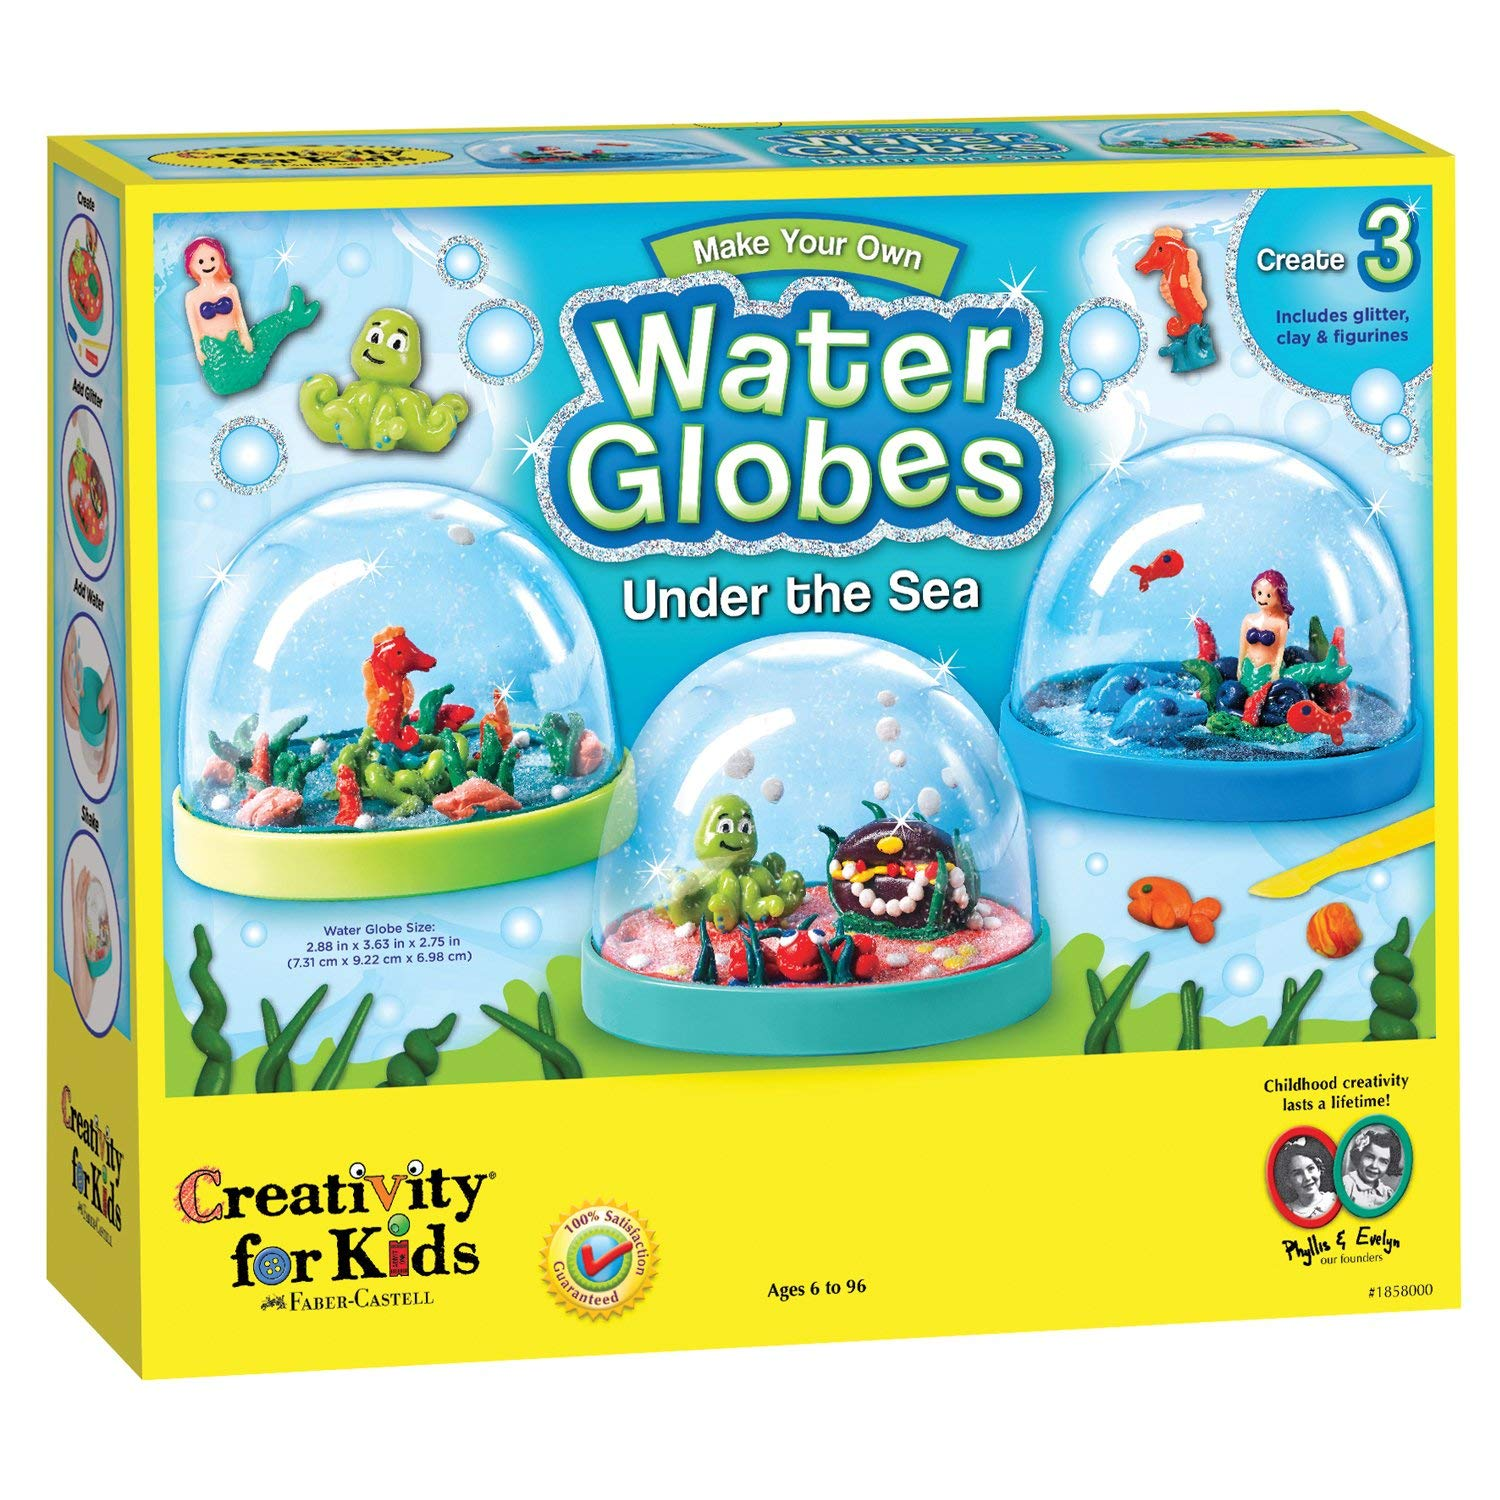 Creativity for Kids Water Globes